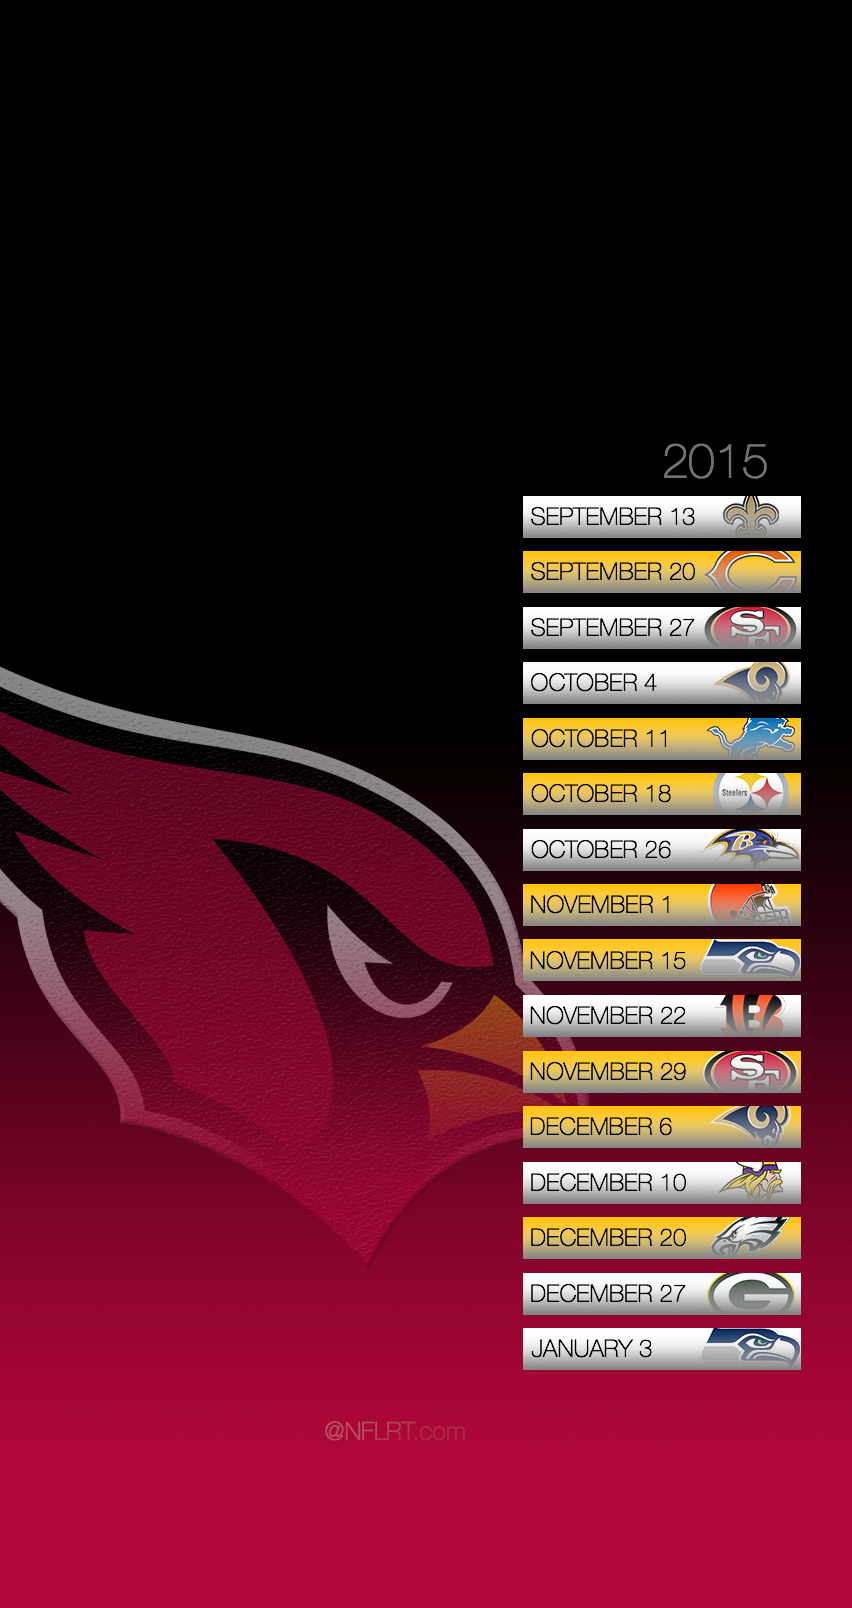 2015 NFL Schedule Wallpapers   Page 8 of 8   NFLRT 852x1608